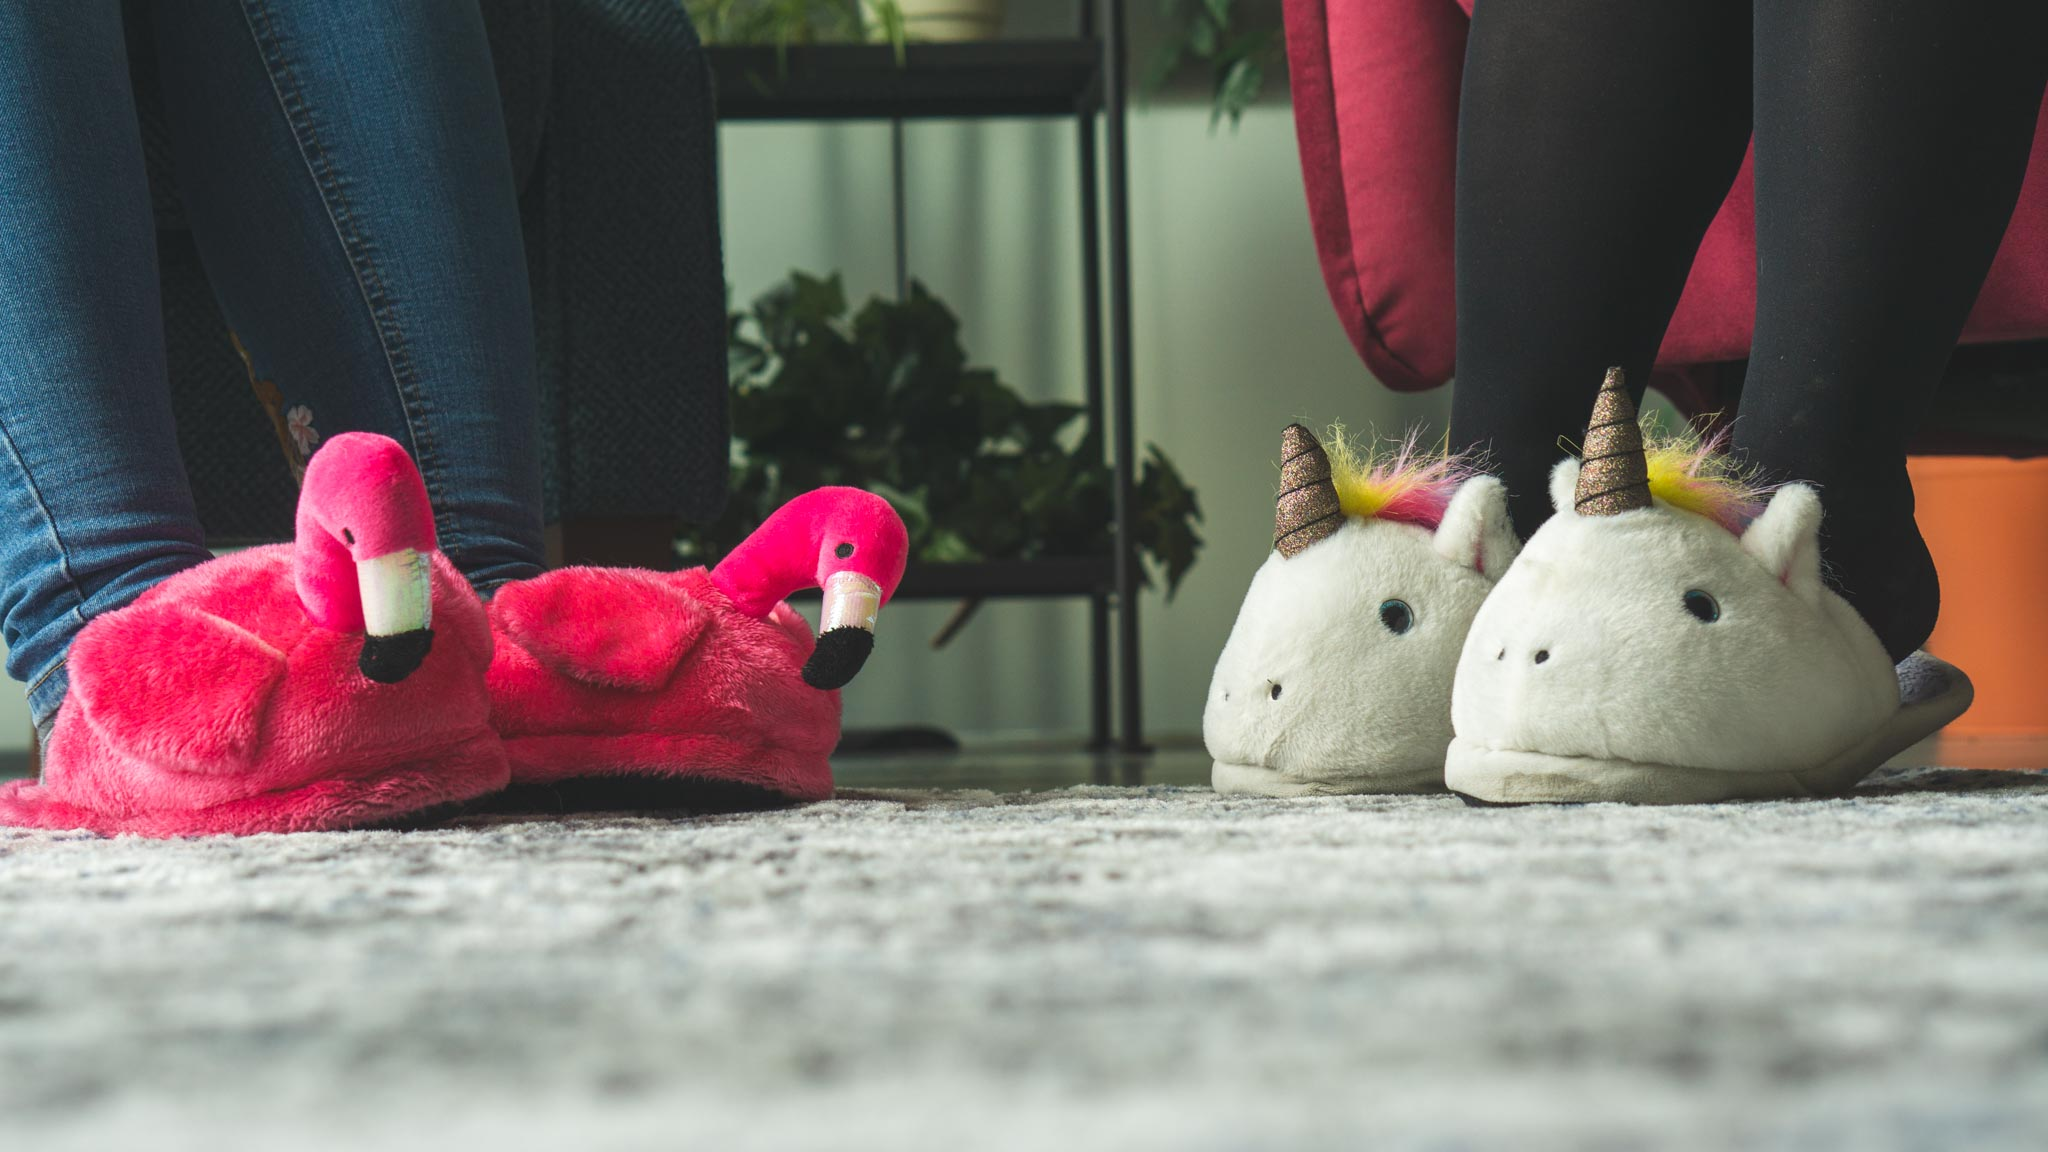 Merixstudio comfy atmosphere and cool slippers